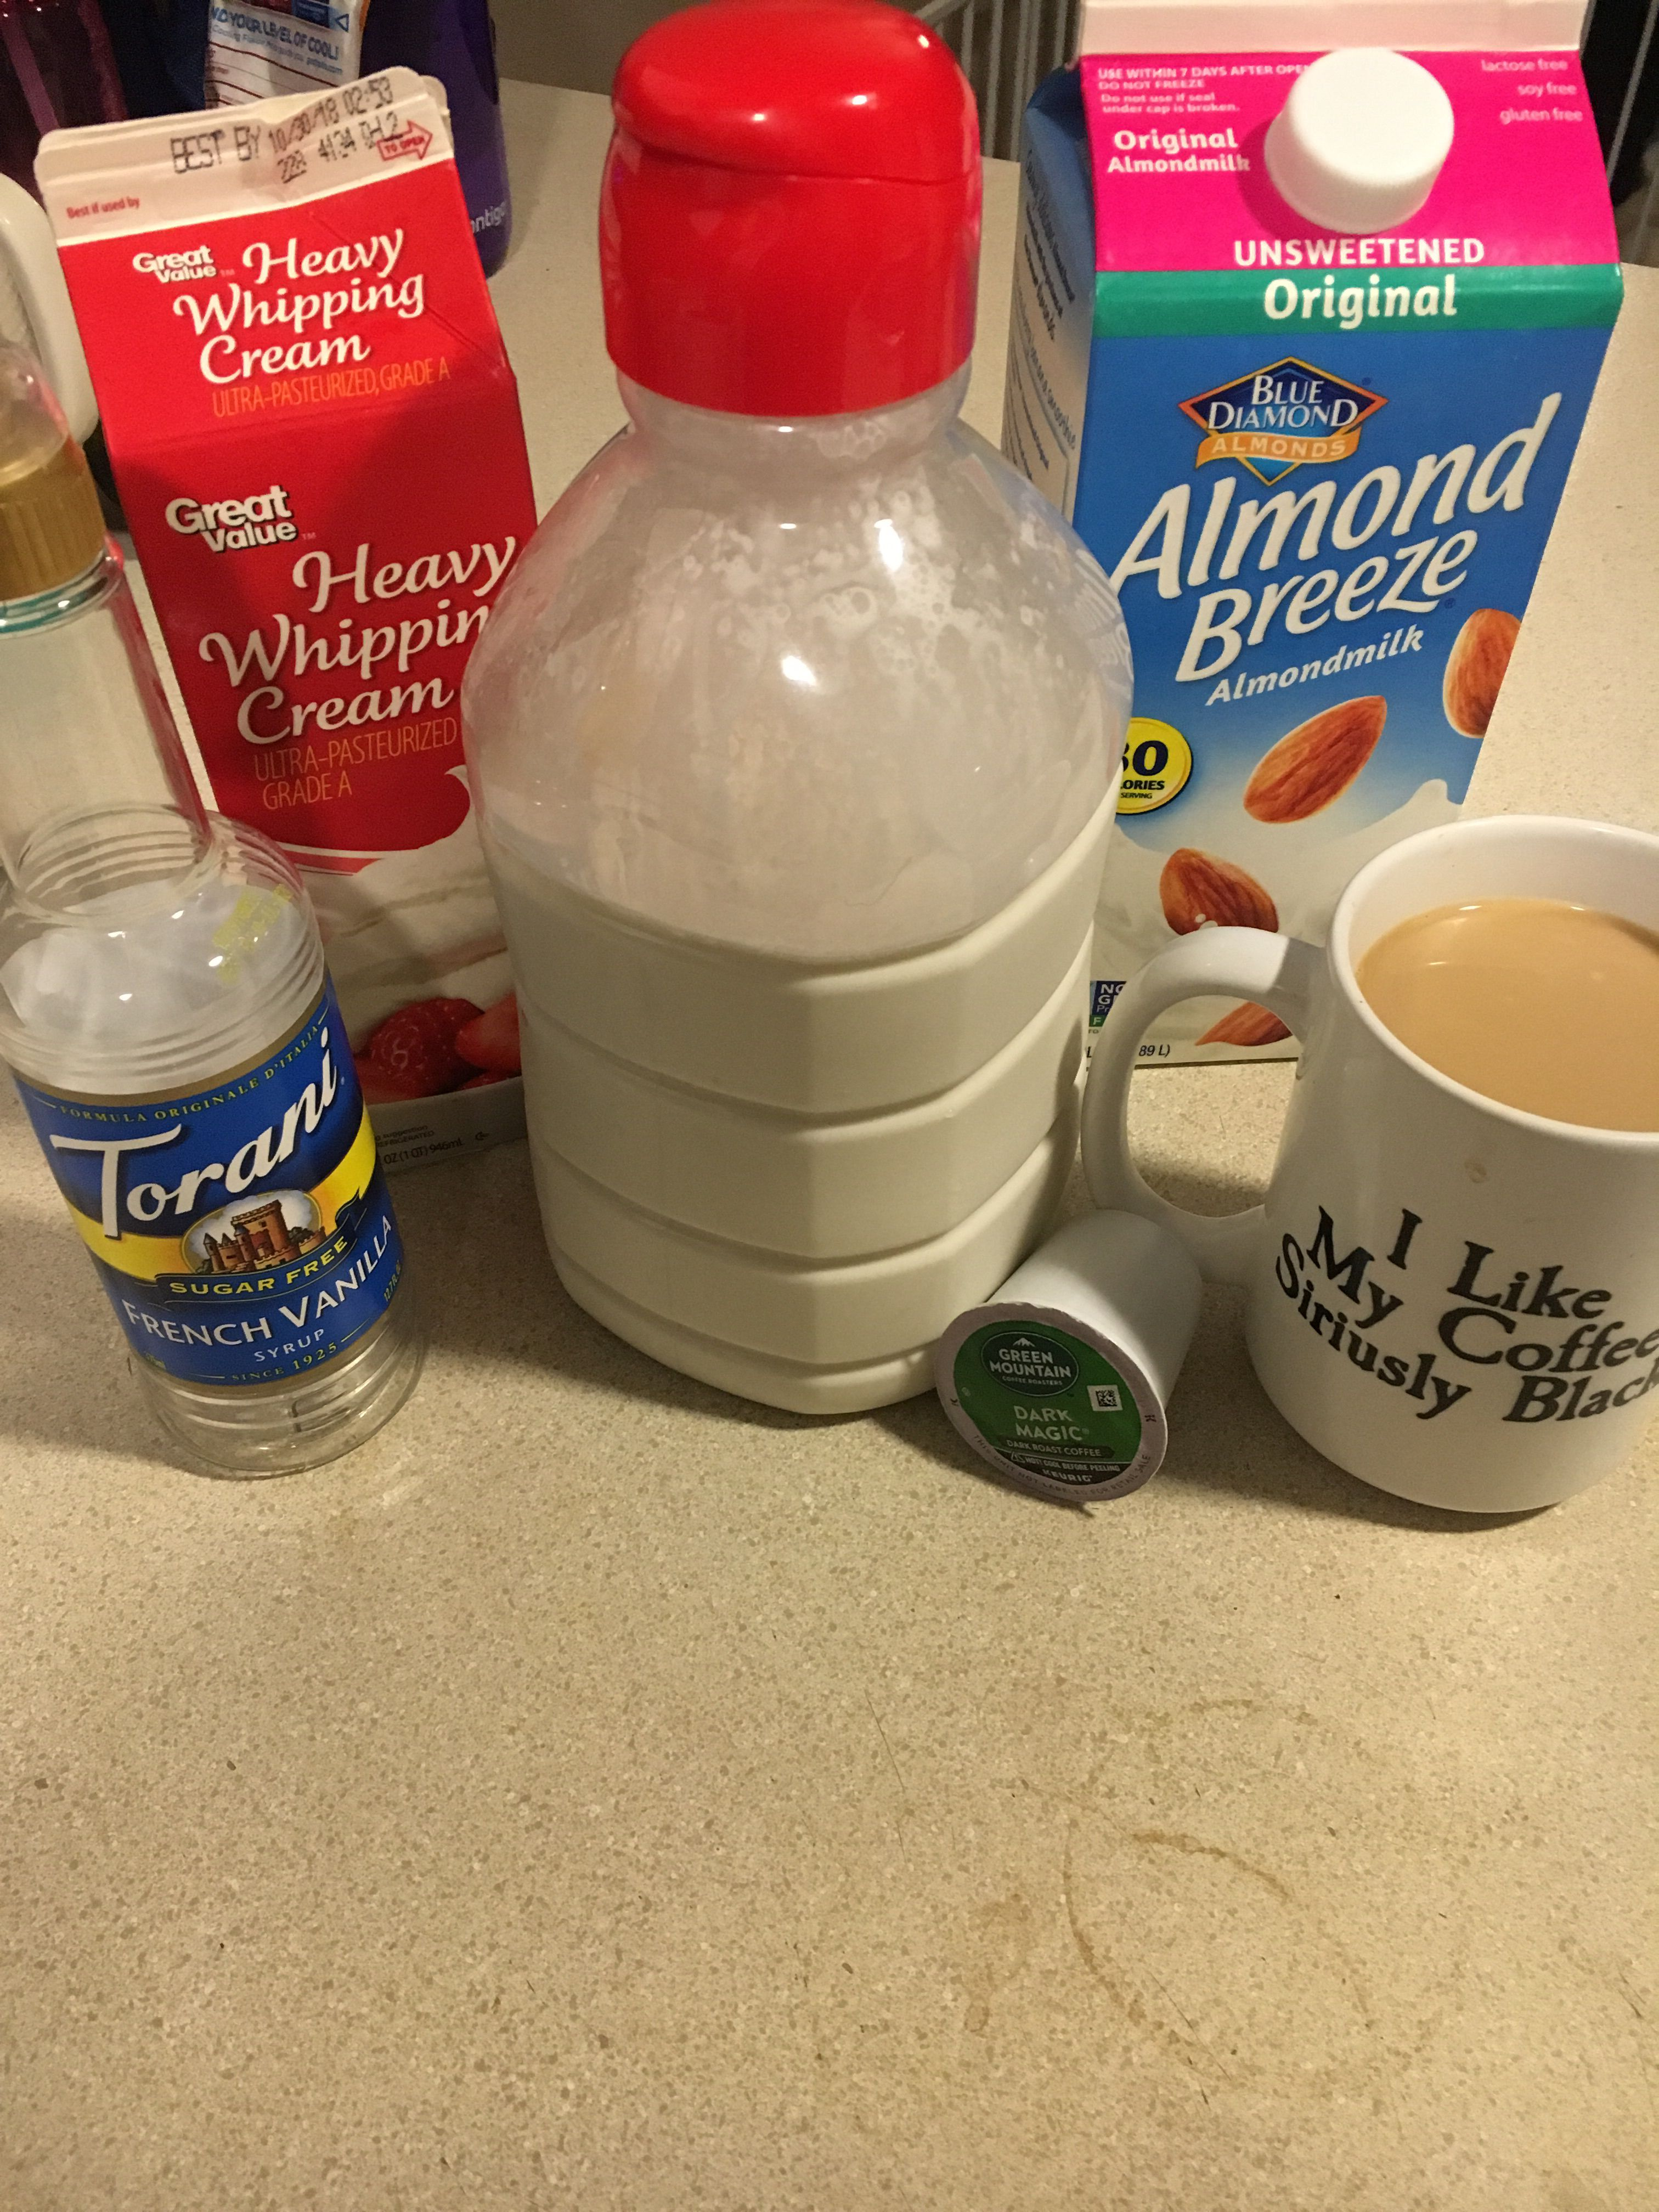 Low carb coffee creamer😋 Heaving whipping cream and